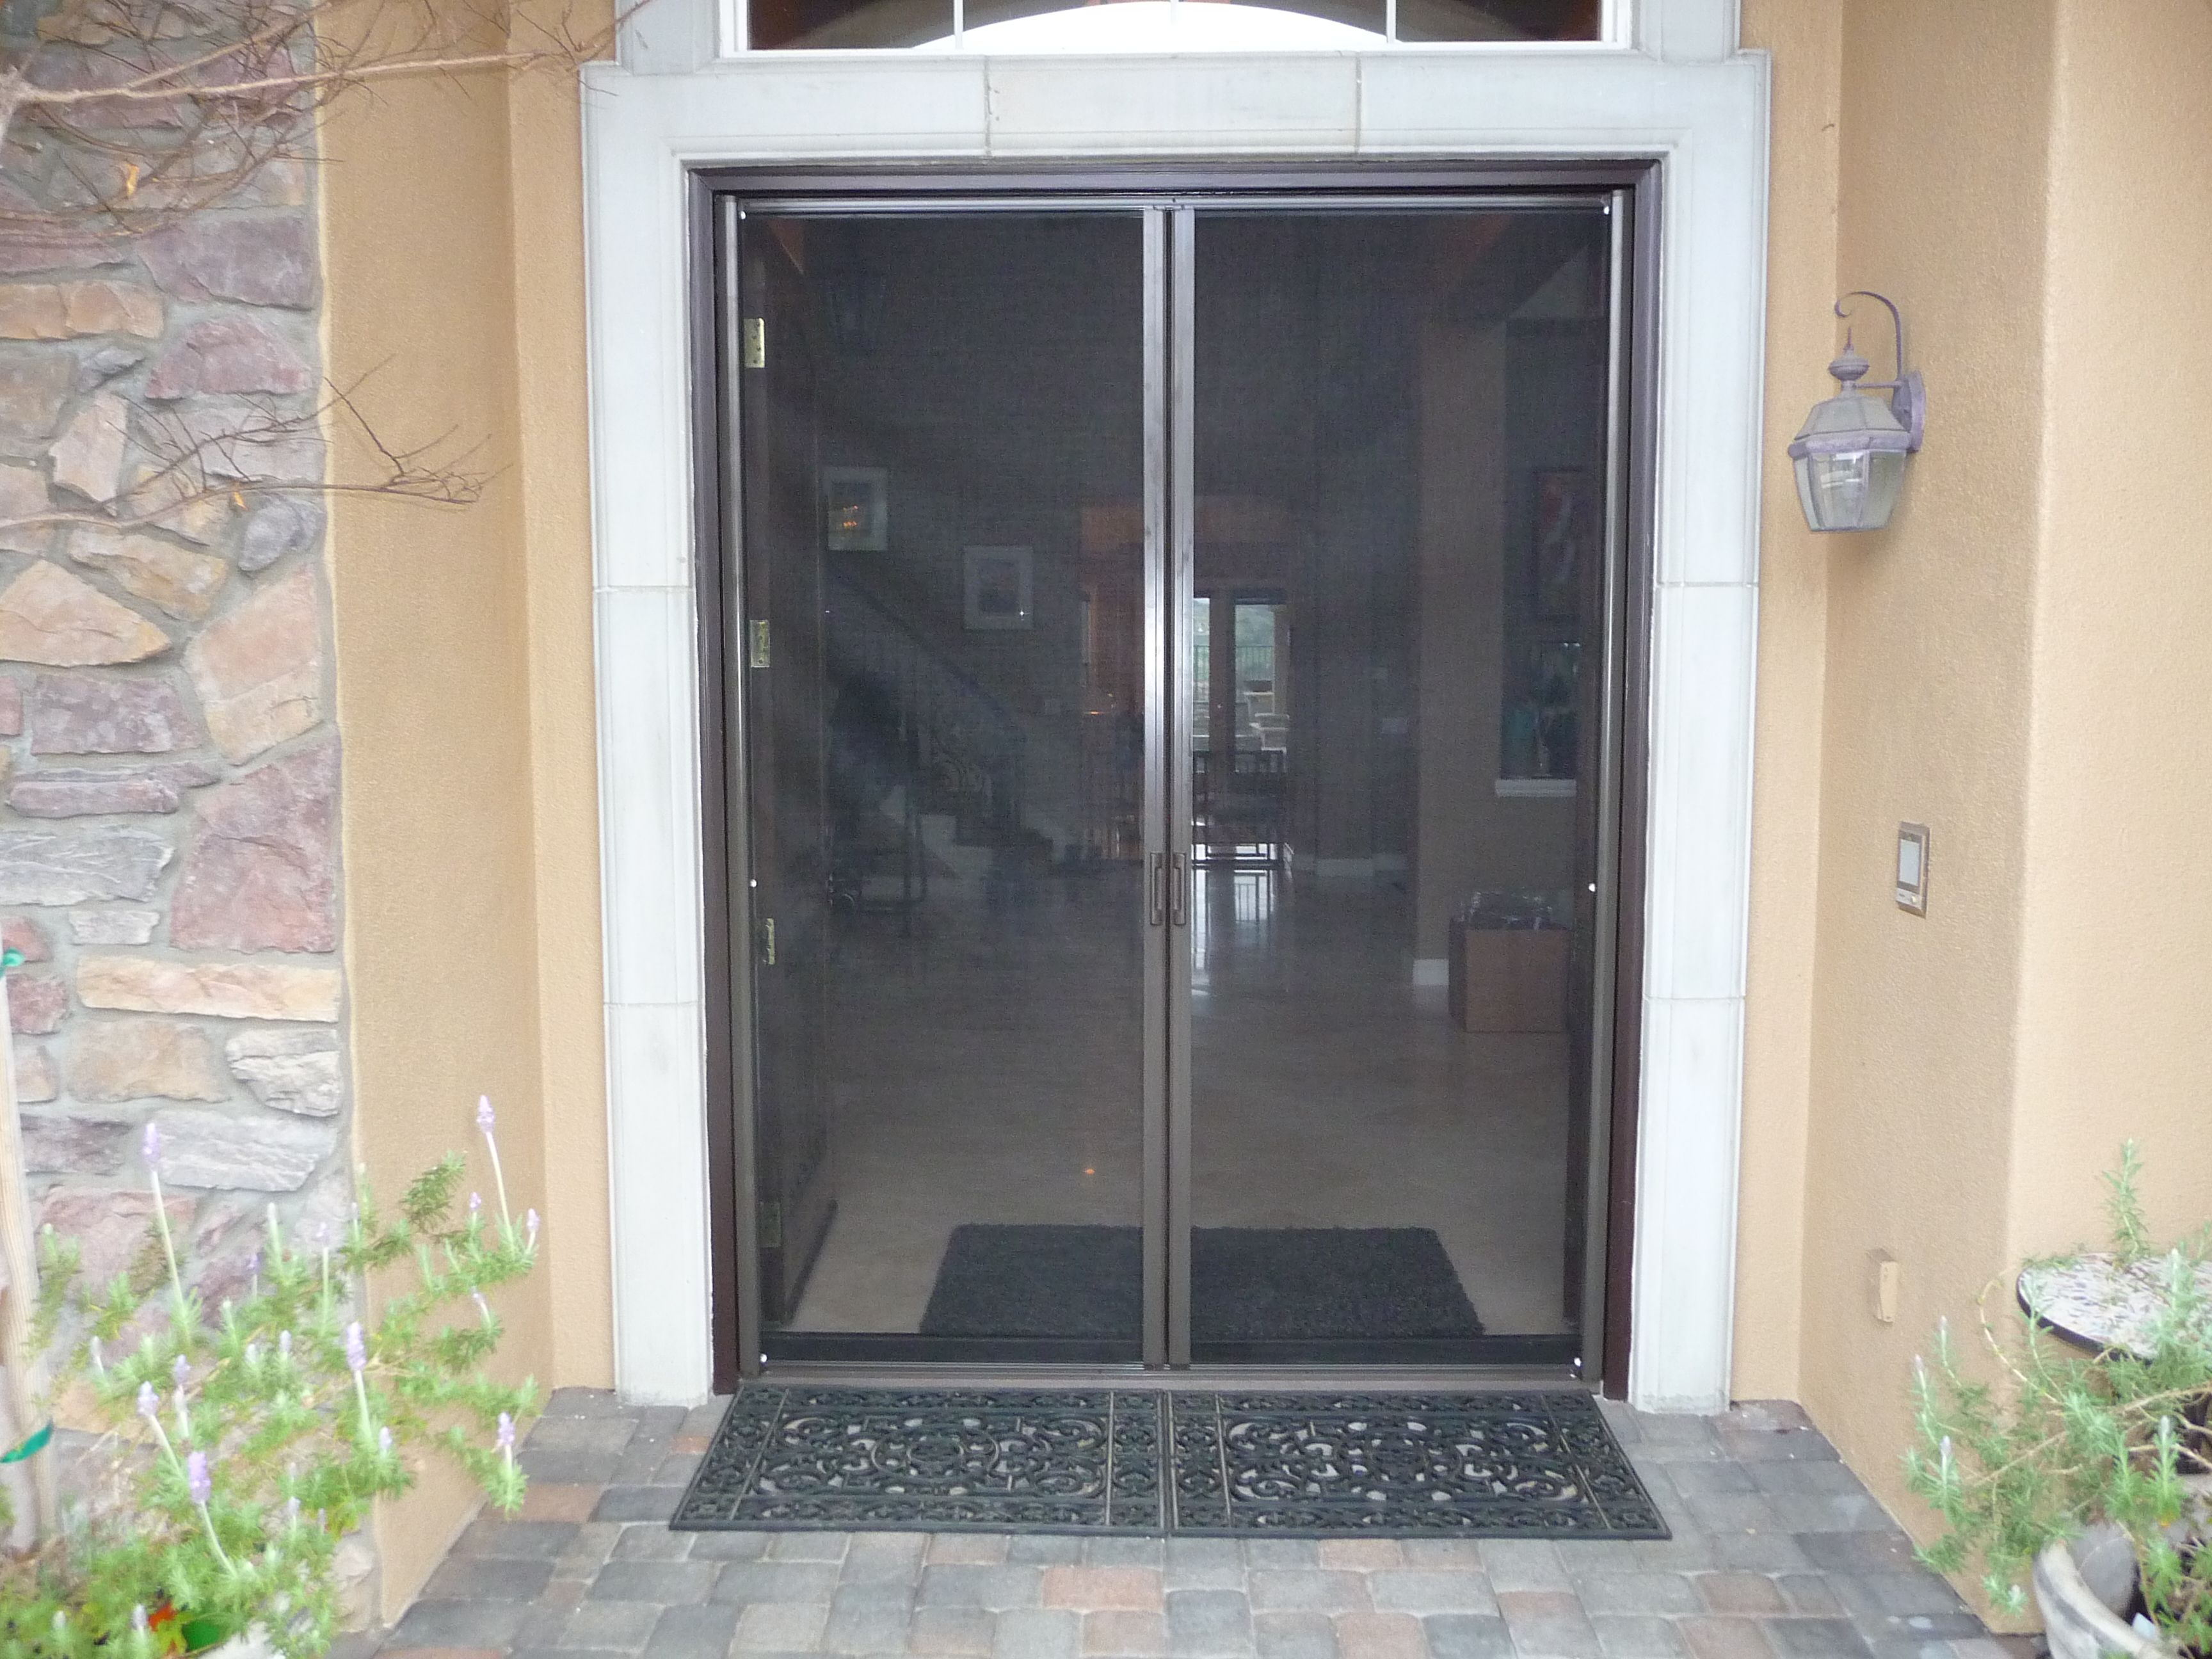 Residential Retractable Screen Double Doors Gallery Classic Home Improvement Products Retractable Screen Door Retractable Screen Screen Door